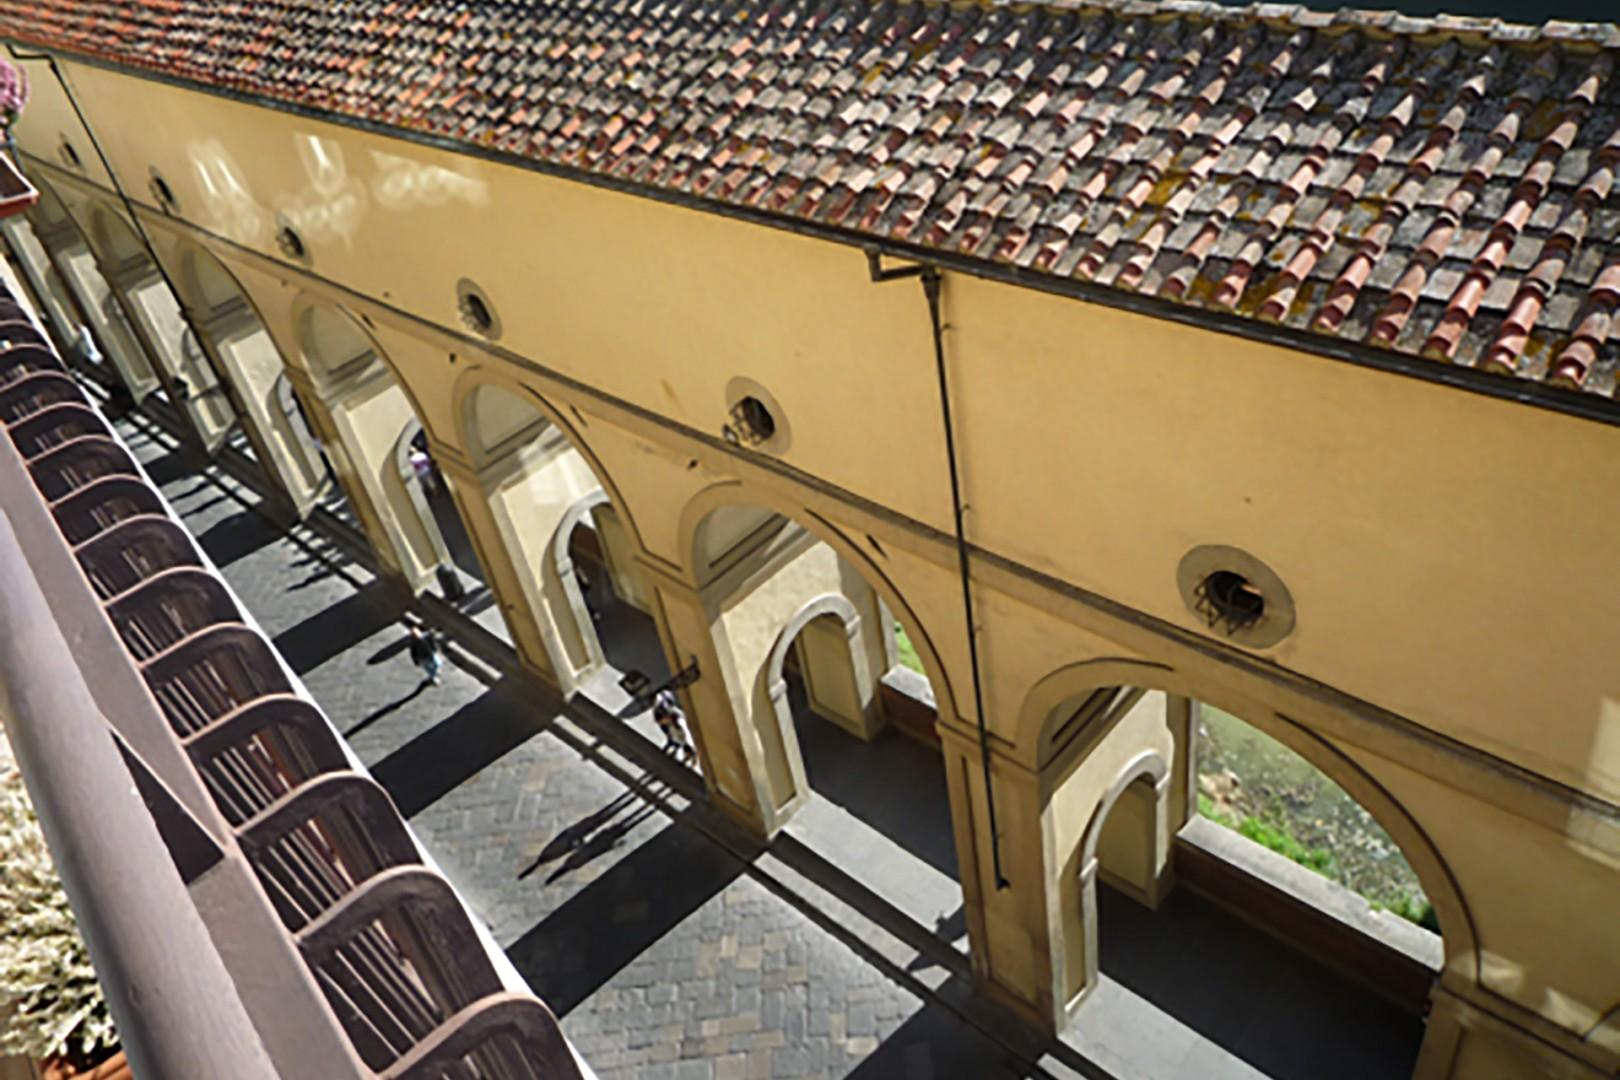 From the terrace you can see the arched walkway that runs along the Arno river.